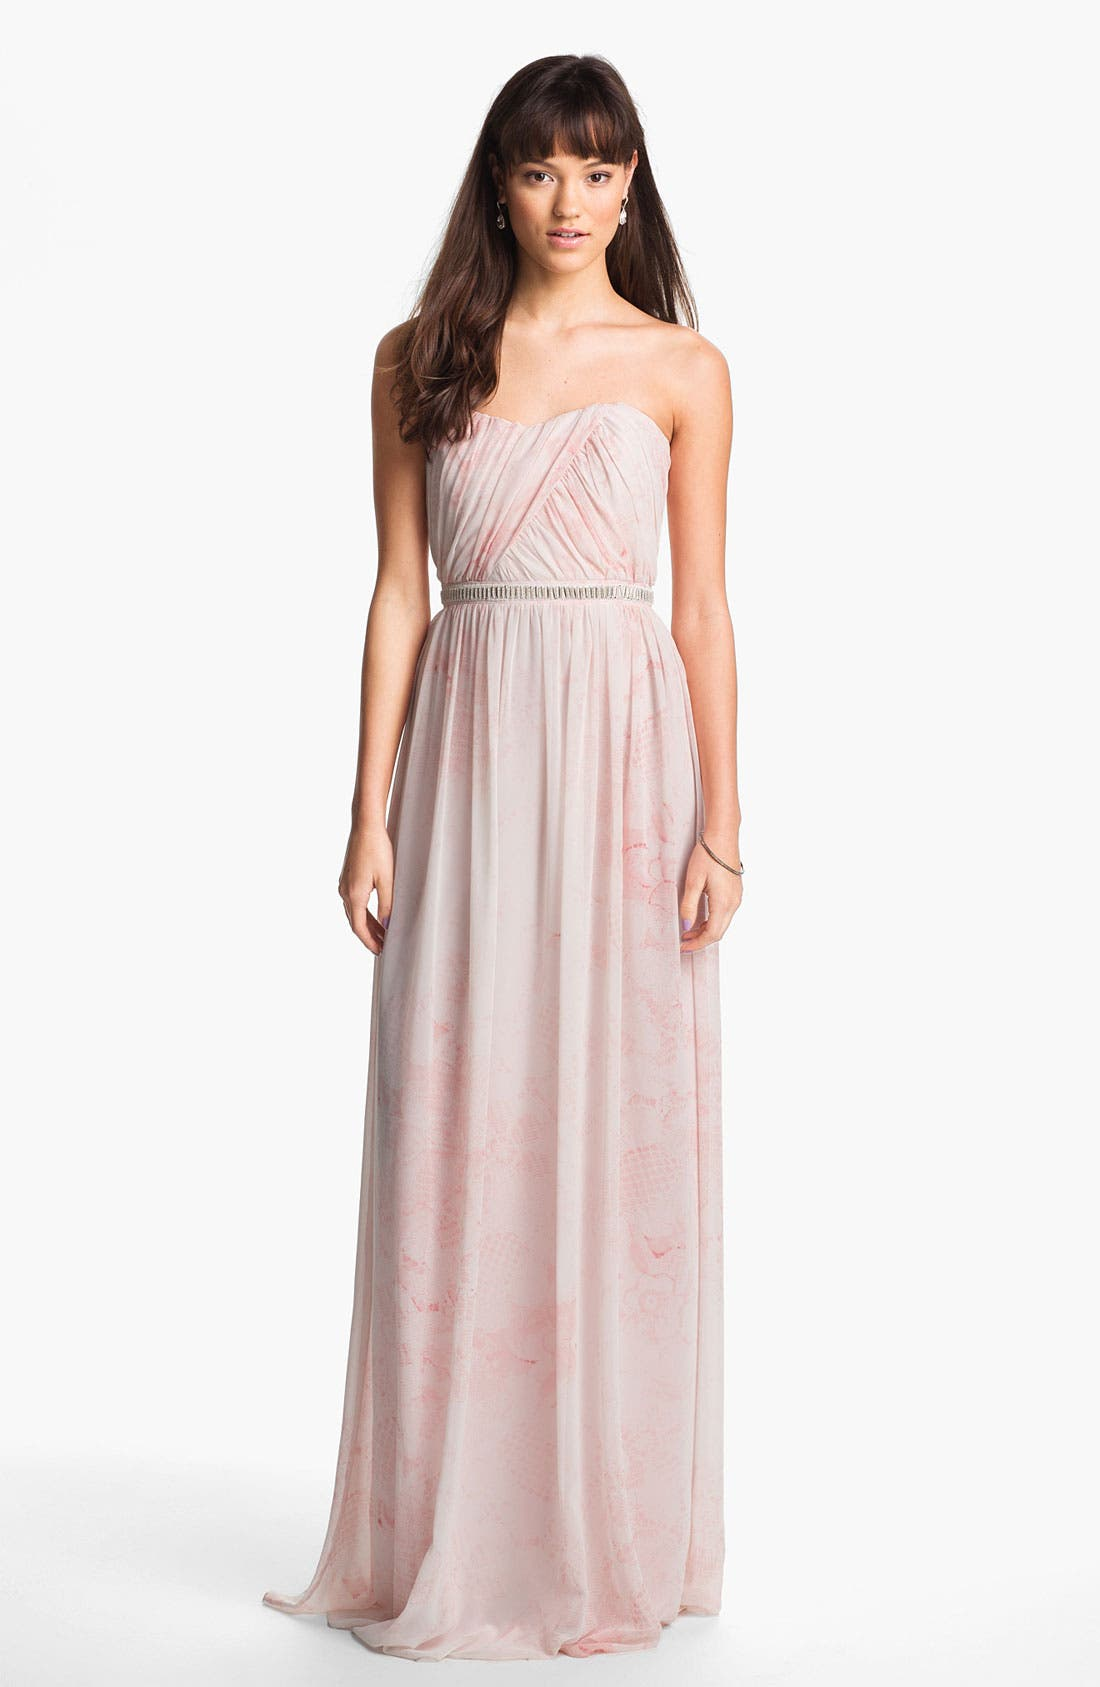 Alternate Image 1 Selected - ERIN erin fetherston 'Cross Heart' Embellished Chiffon Gown